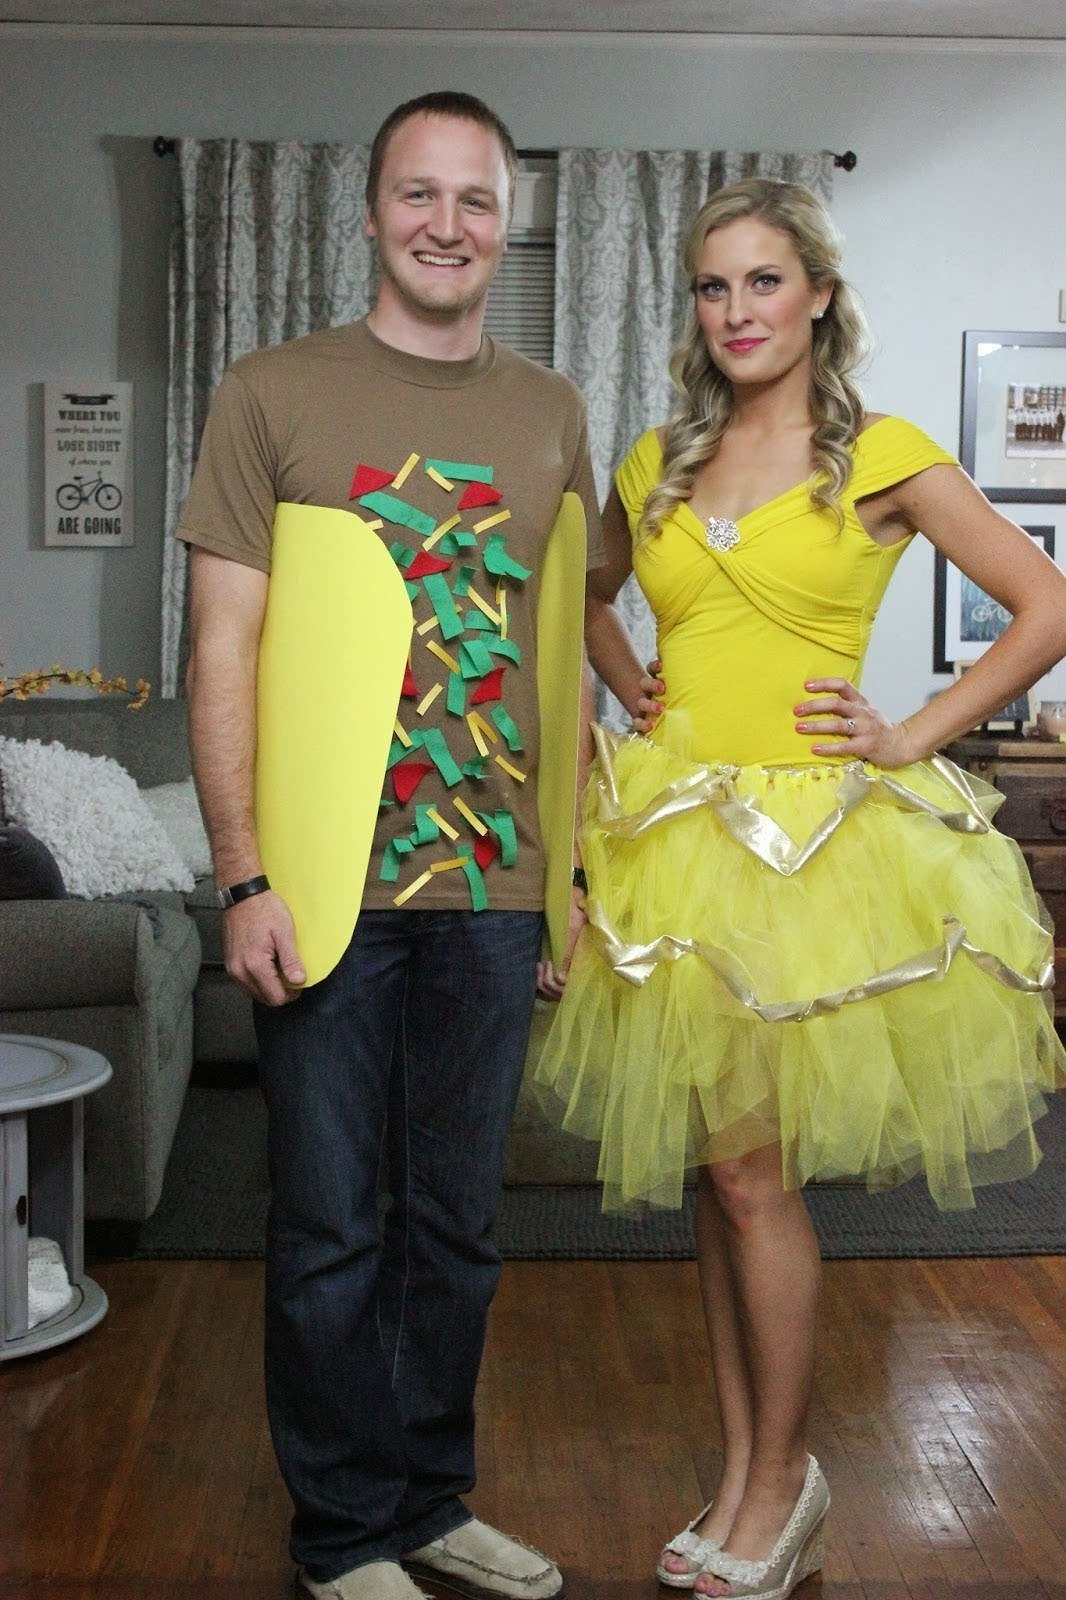 10 Famous Creative Halloween Costume Ideas For Couples 15 diy couples and family halloween costumes onecreativemommy 1 2020